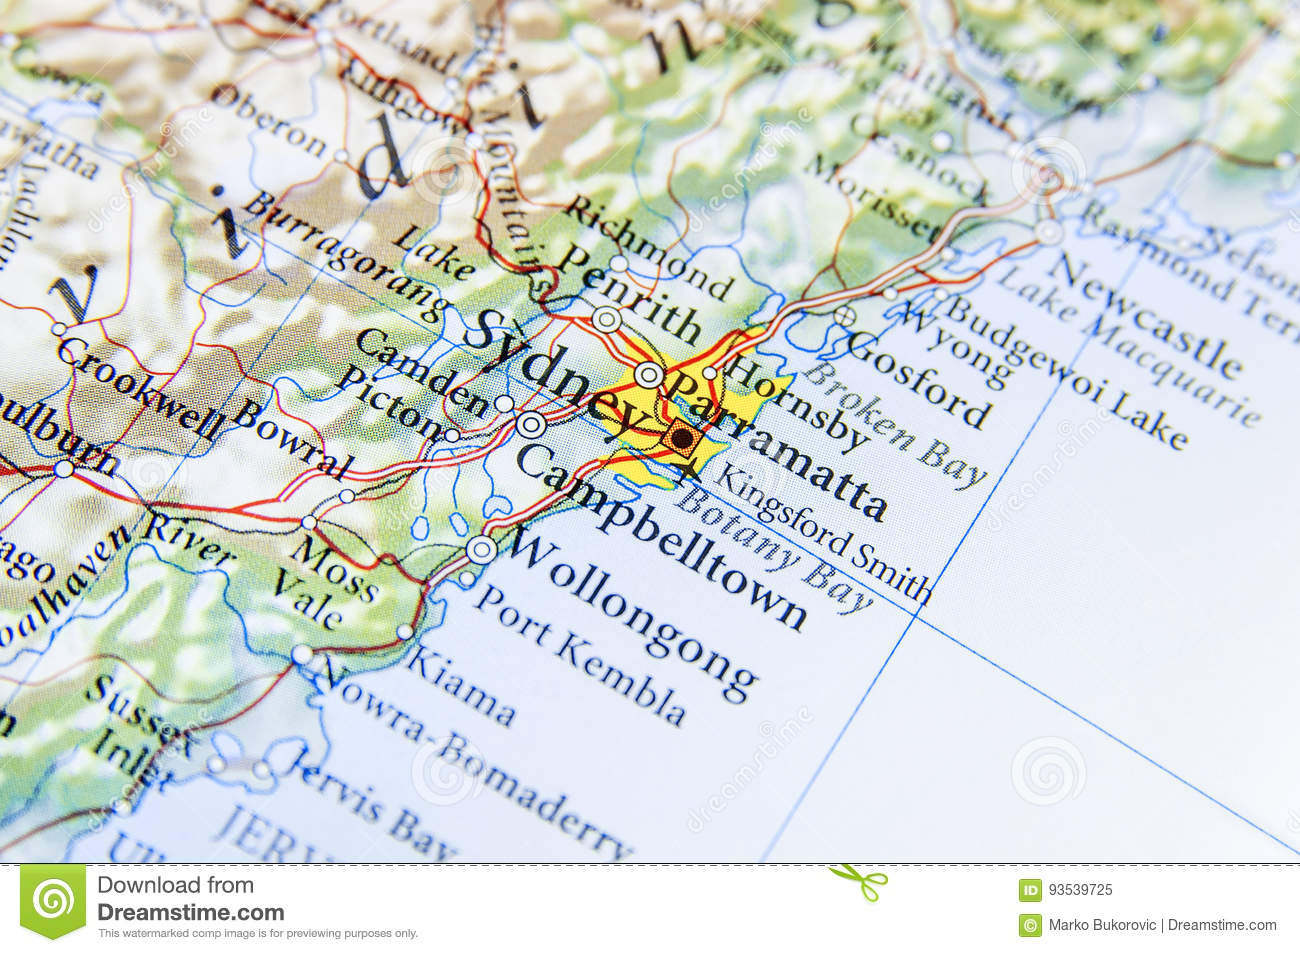 Geographic Map Of Australia With Sydney City Stock Image - Image of on new south wales australia map, perth australia map, grand pacific drive australia map, cronulla beach australia map, moruya australia map, north ryde australia map, avoca beach australia map, townsville australia map, perisher australia map, liverpool australia map, pokolbin australia map, port macquarie australia map, brisbane australia map, sydney australia map, canberra australia map, merimbula australia map, lake mungo australia map, sawtell australia map, hamilton australia map, wollongong australia map,